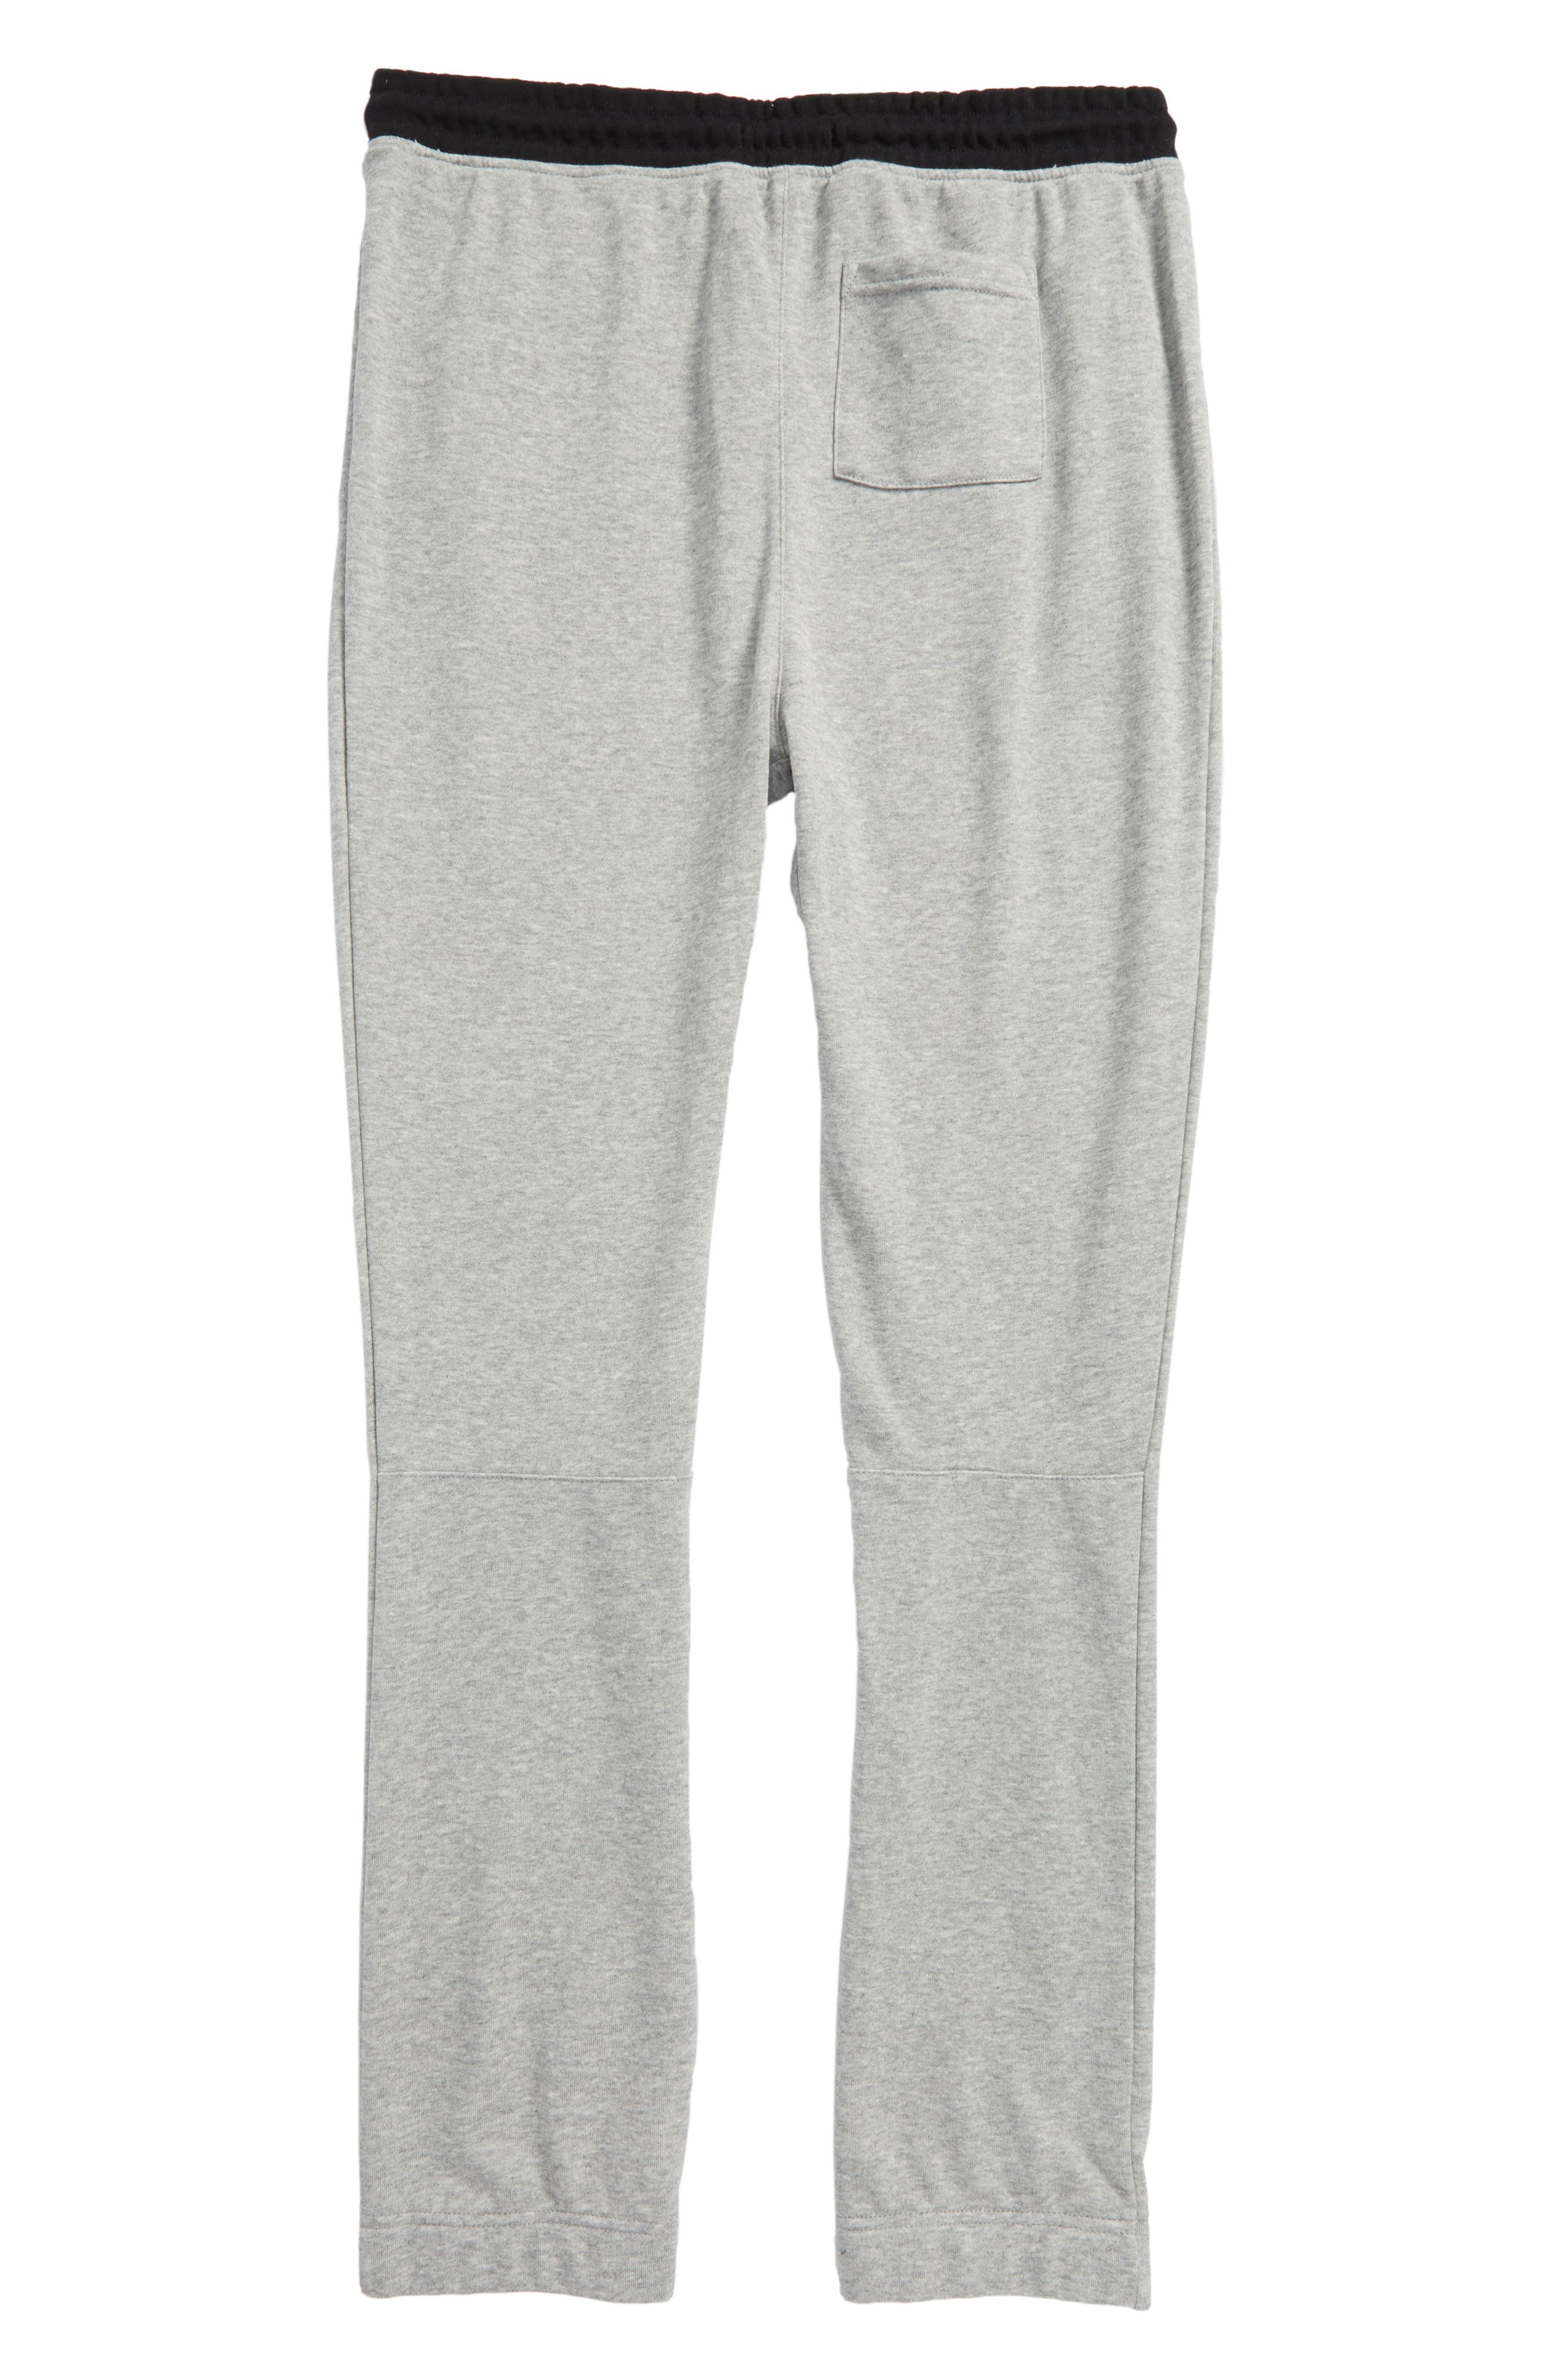 Jogger Pants,                             Alternate thumbnail 2, color,                             030